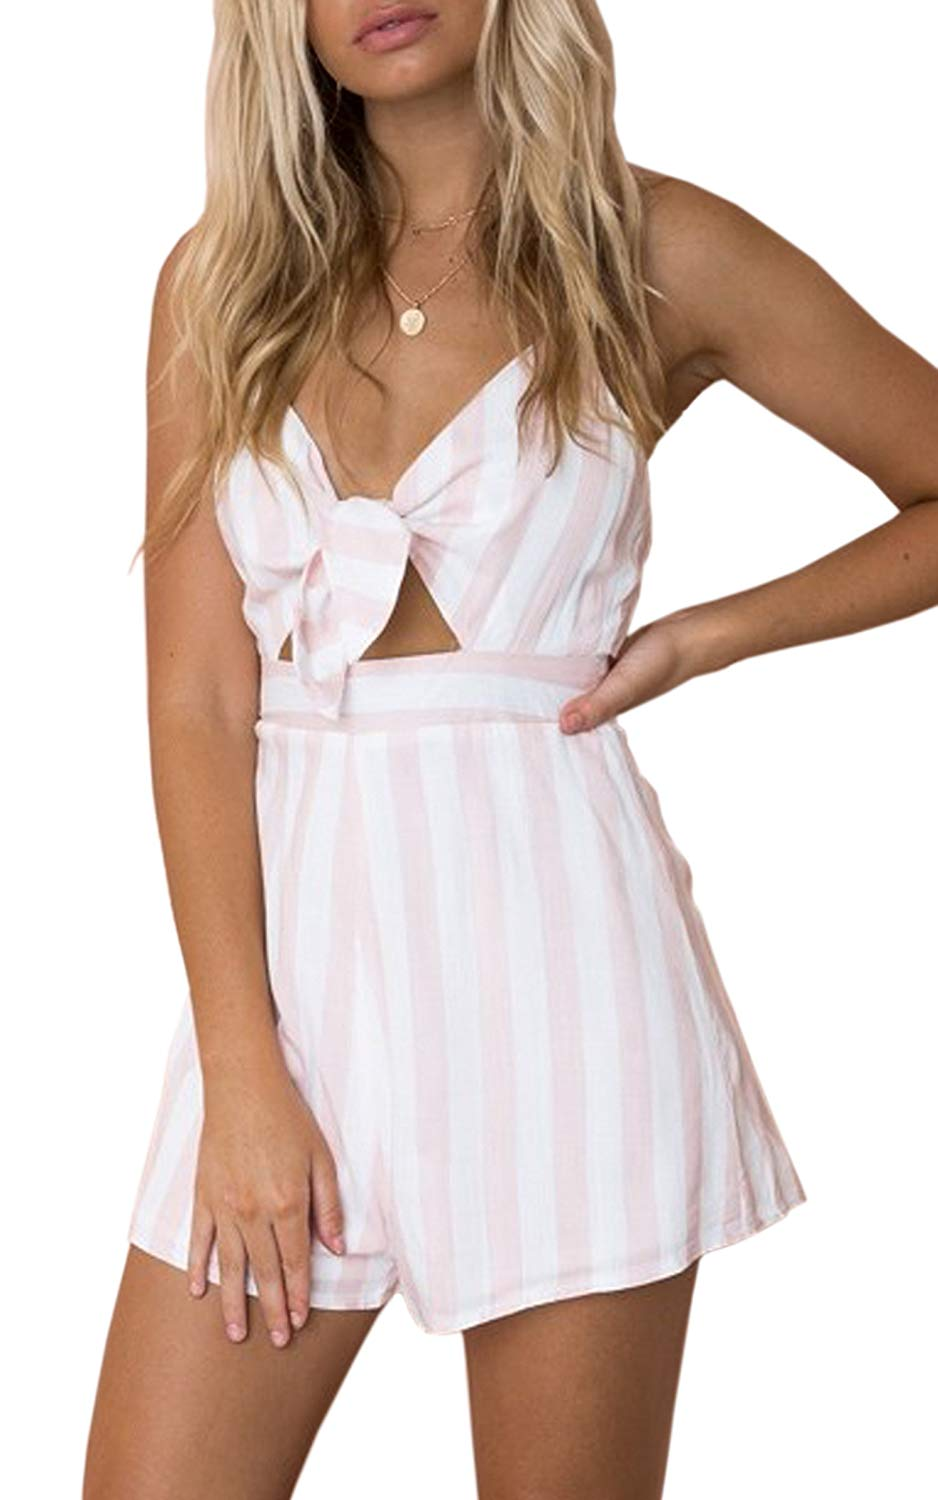 Amazon.com: ECOWISH Womens Rompers Summer Beach Spaghetti Strap Jumpsuit V Neck Backless Short Pants Rompers (with A Separate Tie): Clothing